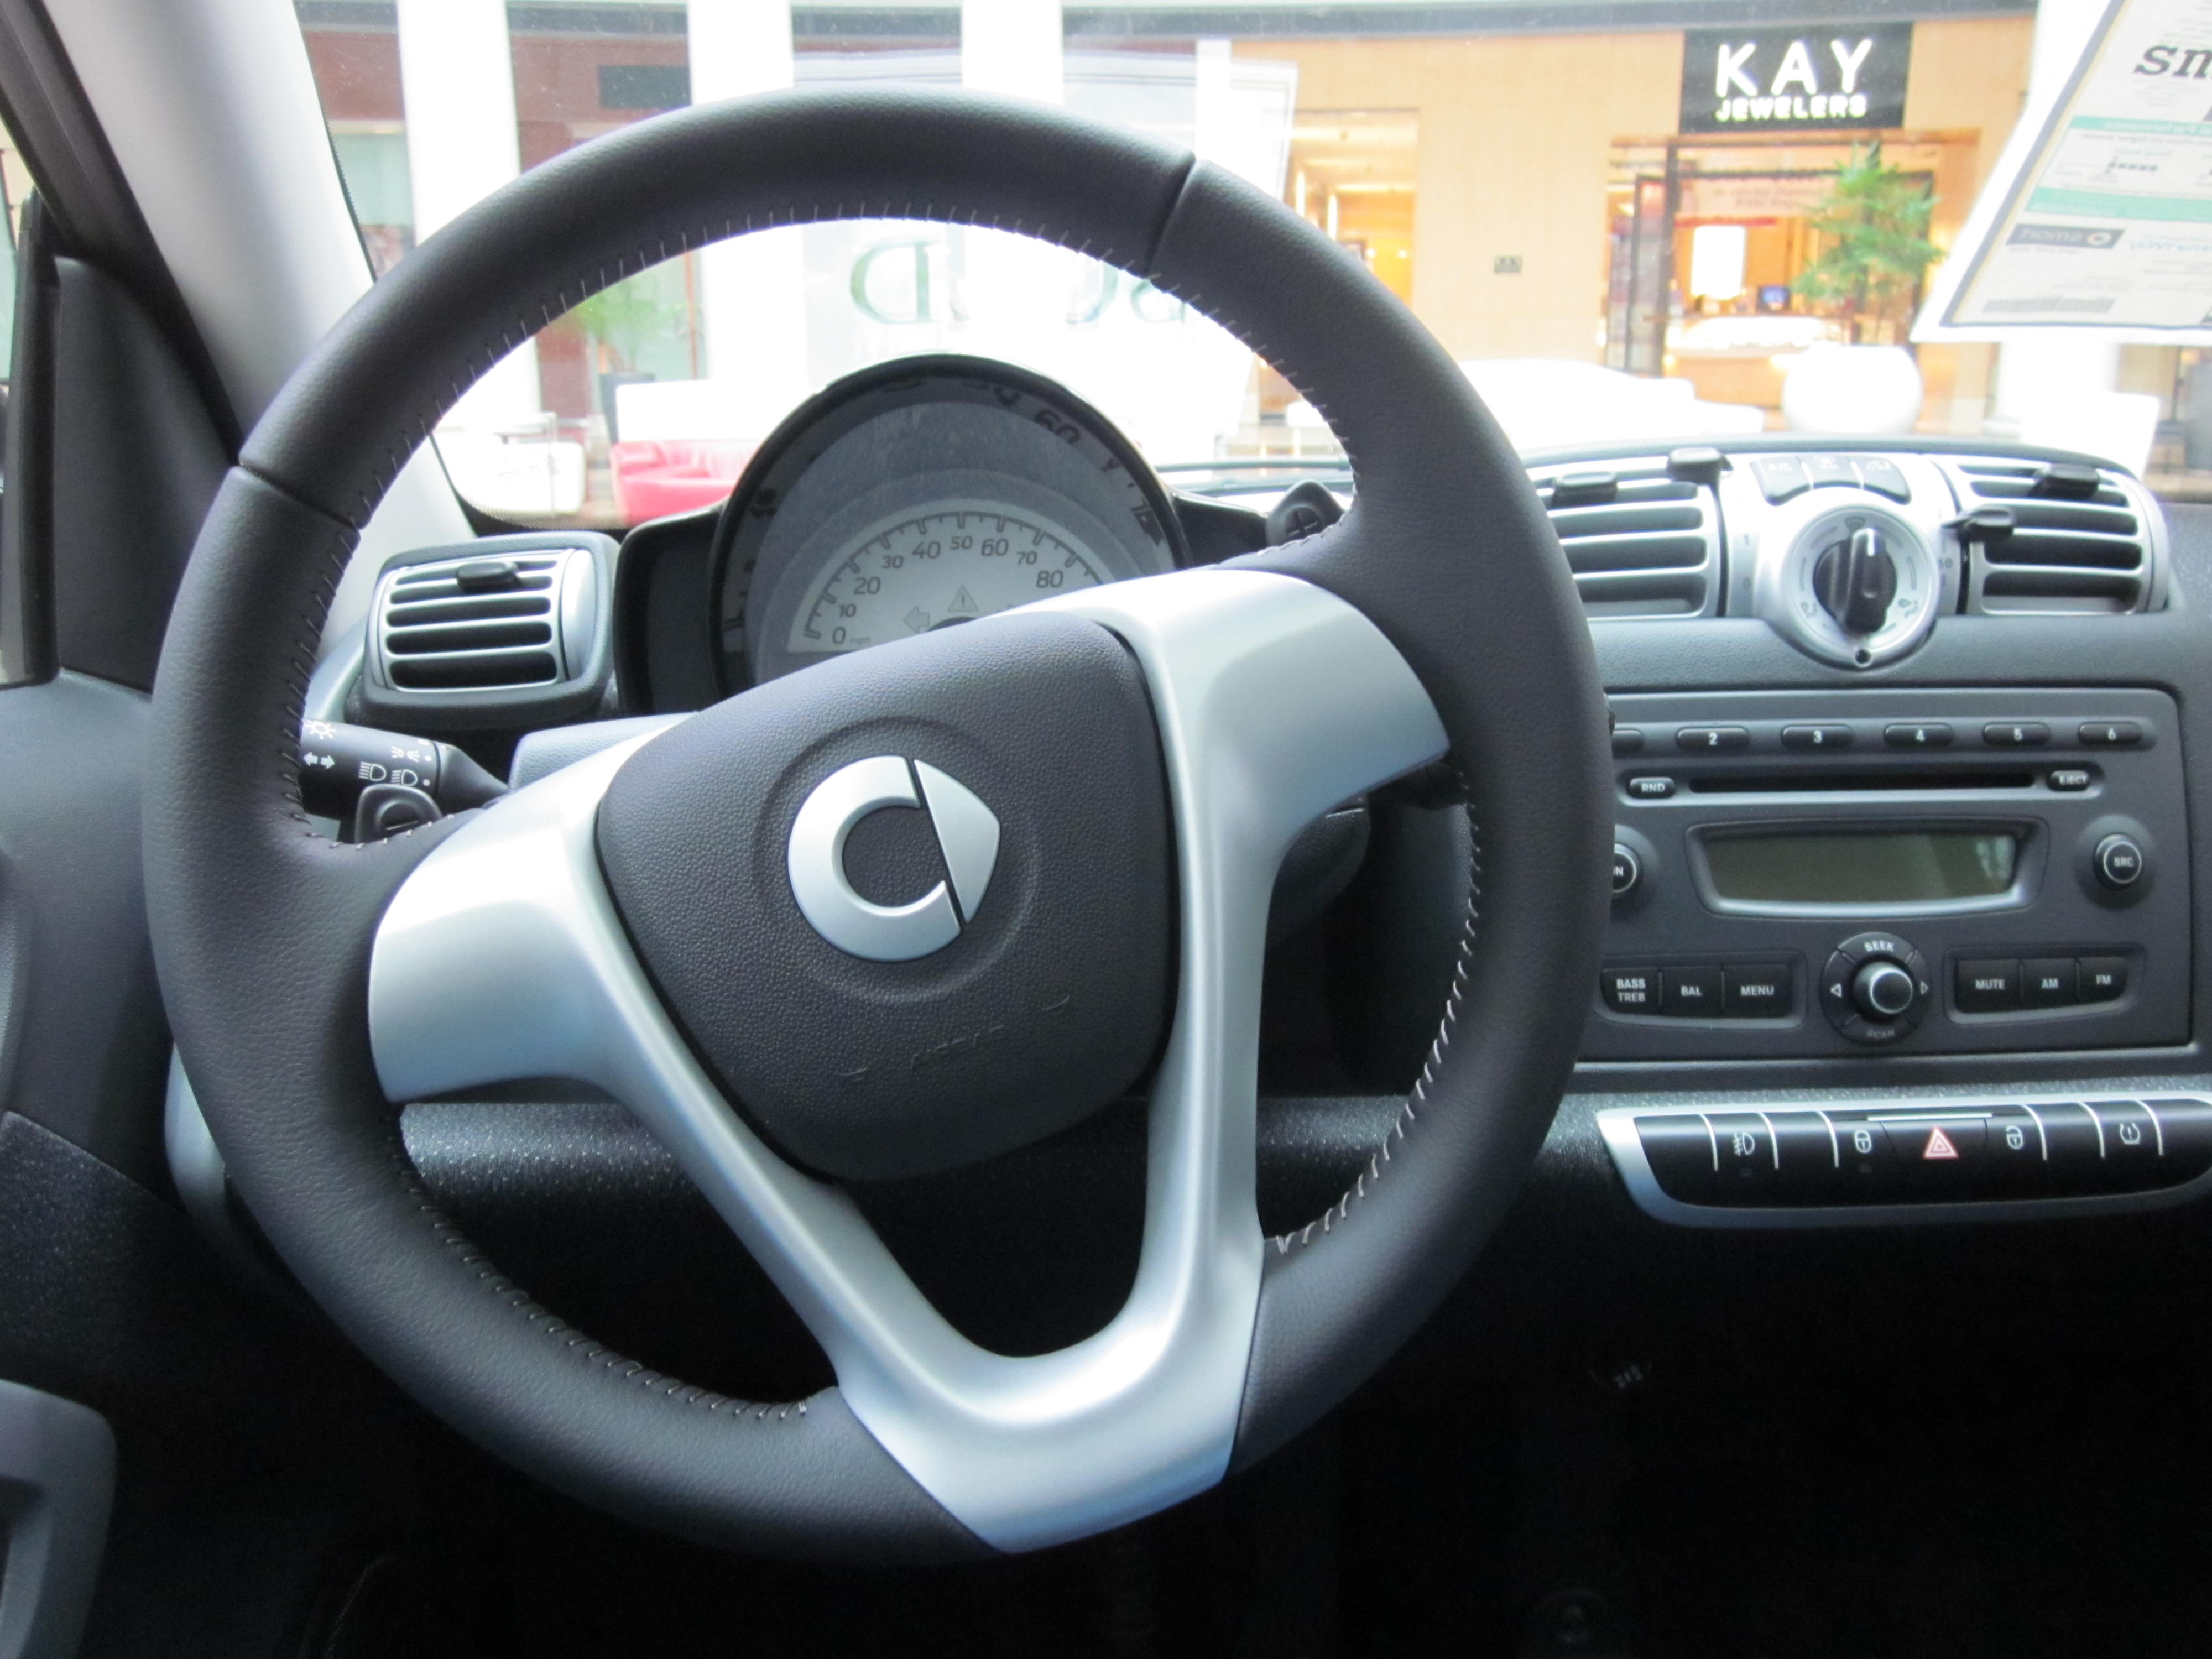 plik 2010 smart fortwo passion coupe interior 2 jpg wikipedia wolna encyklopedia. Black Bedroom Furniture Sets. Home Design Ideas